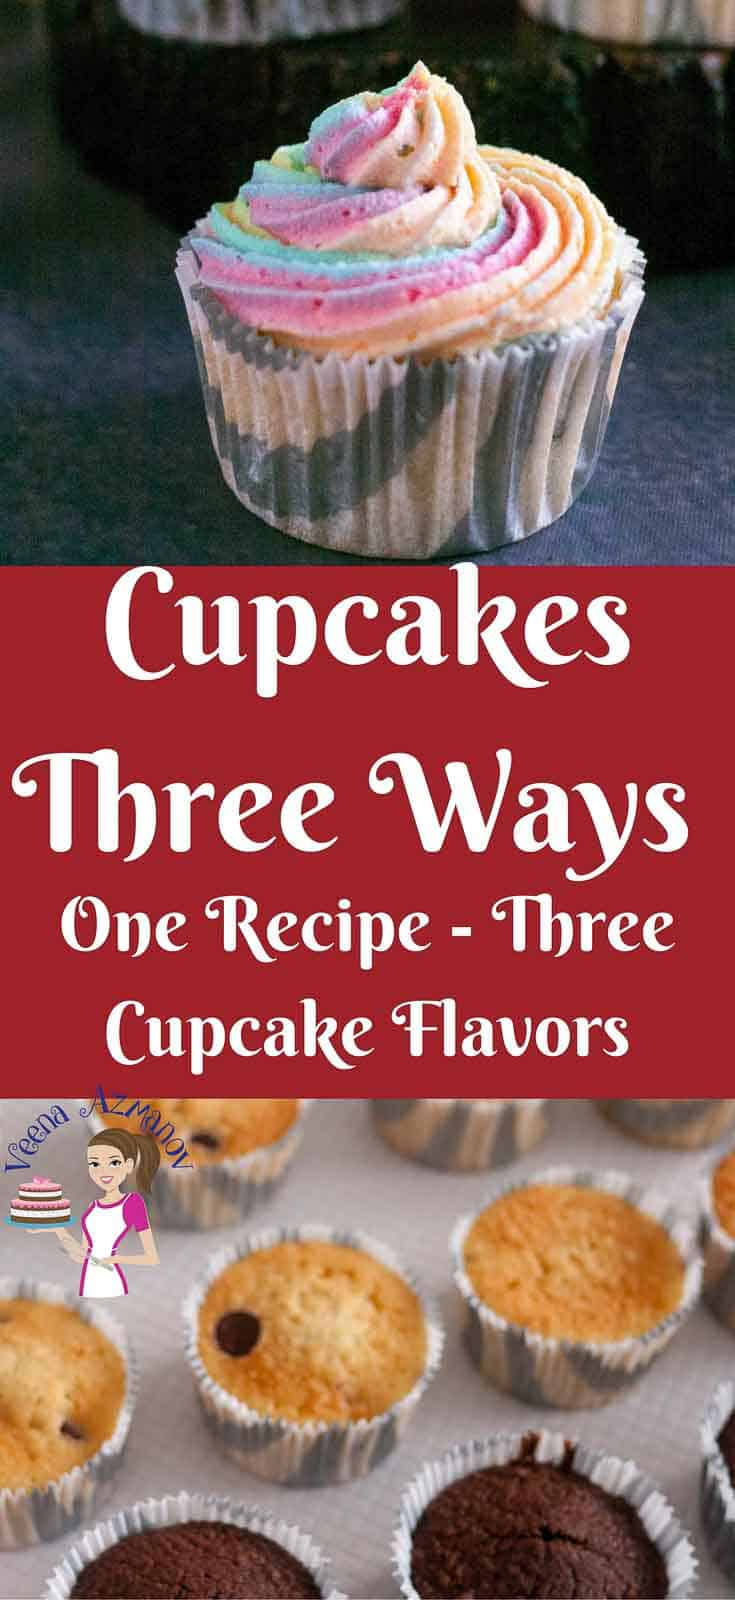 This one recipe three cupcake flavors is a great way to add more options and choices of flavors with just one basic recipe. That way you do not have to bake three different batches of cupcakes to get three different cupcake flavors. A quick easy and effortless recipe with no special equipment necessary.